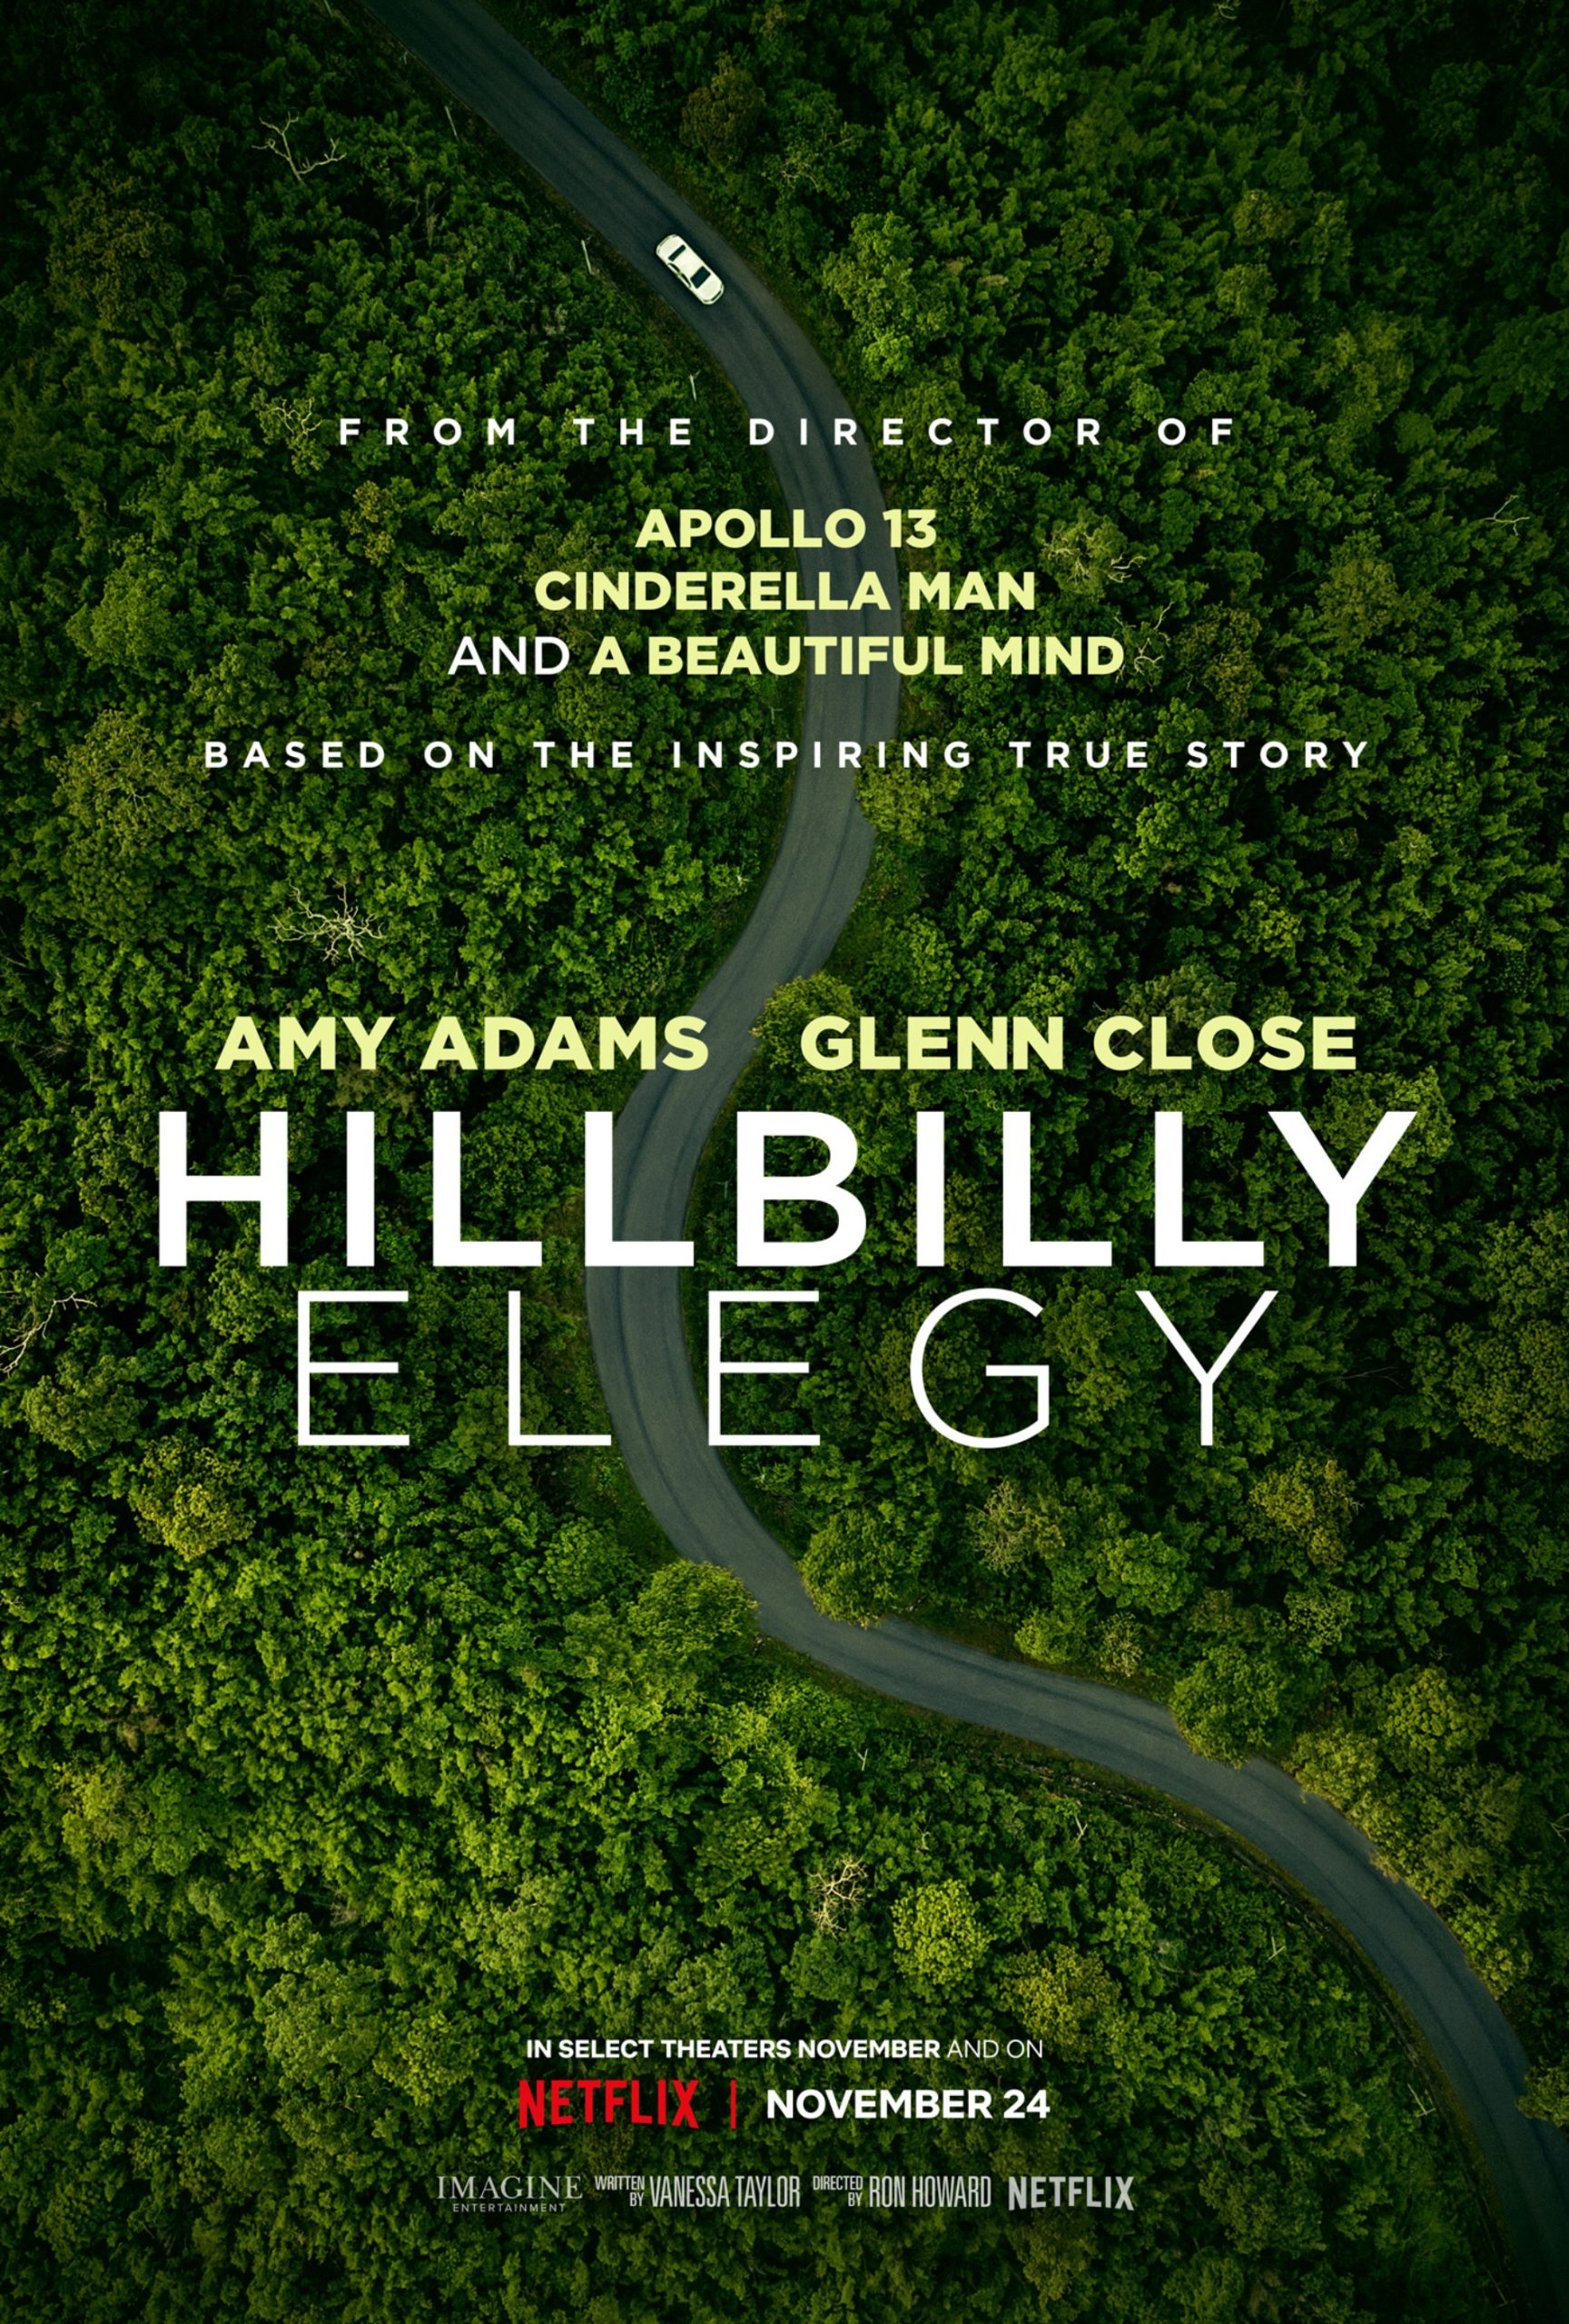 Hillbilly Elegy Trailer: Glenn Close Has the Oscar in Sight